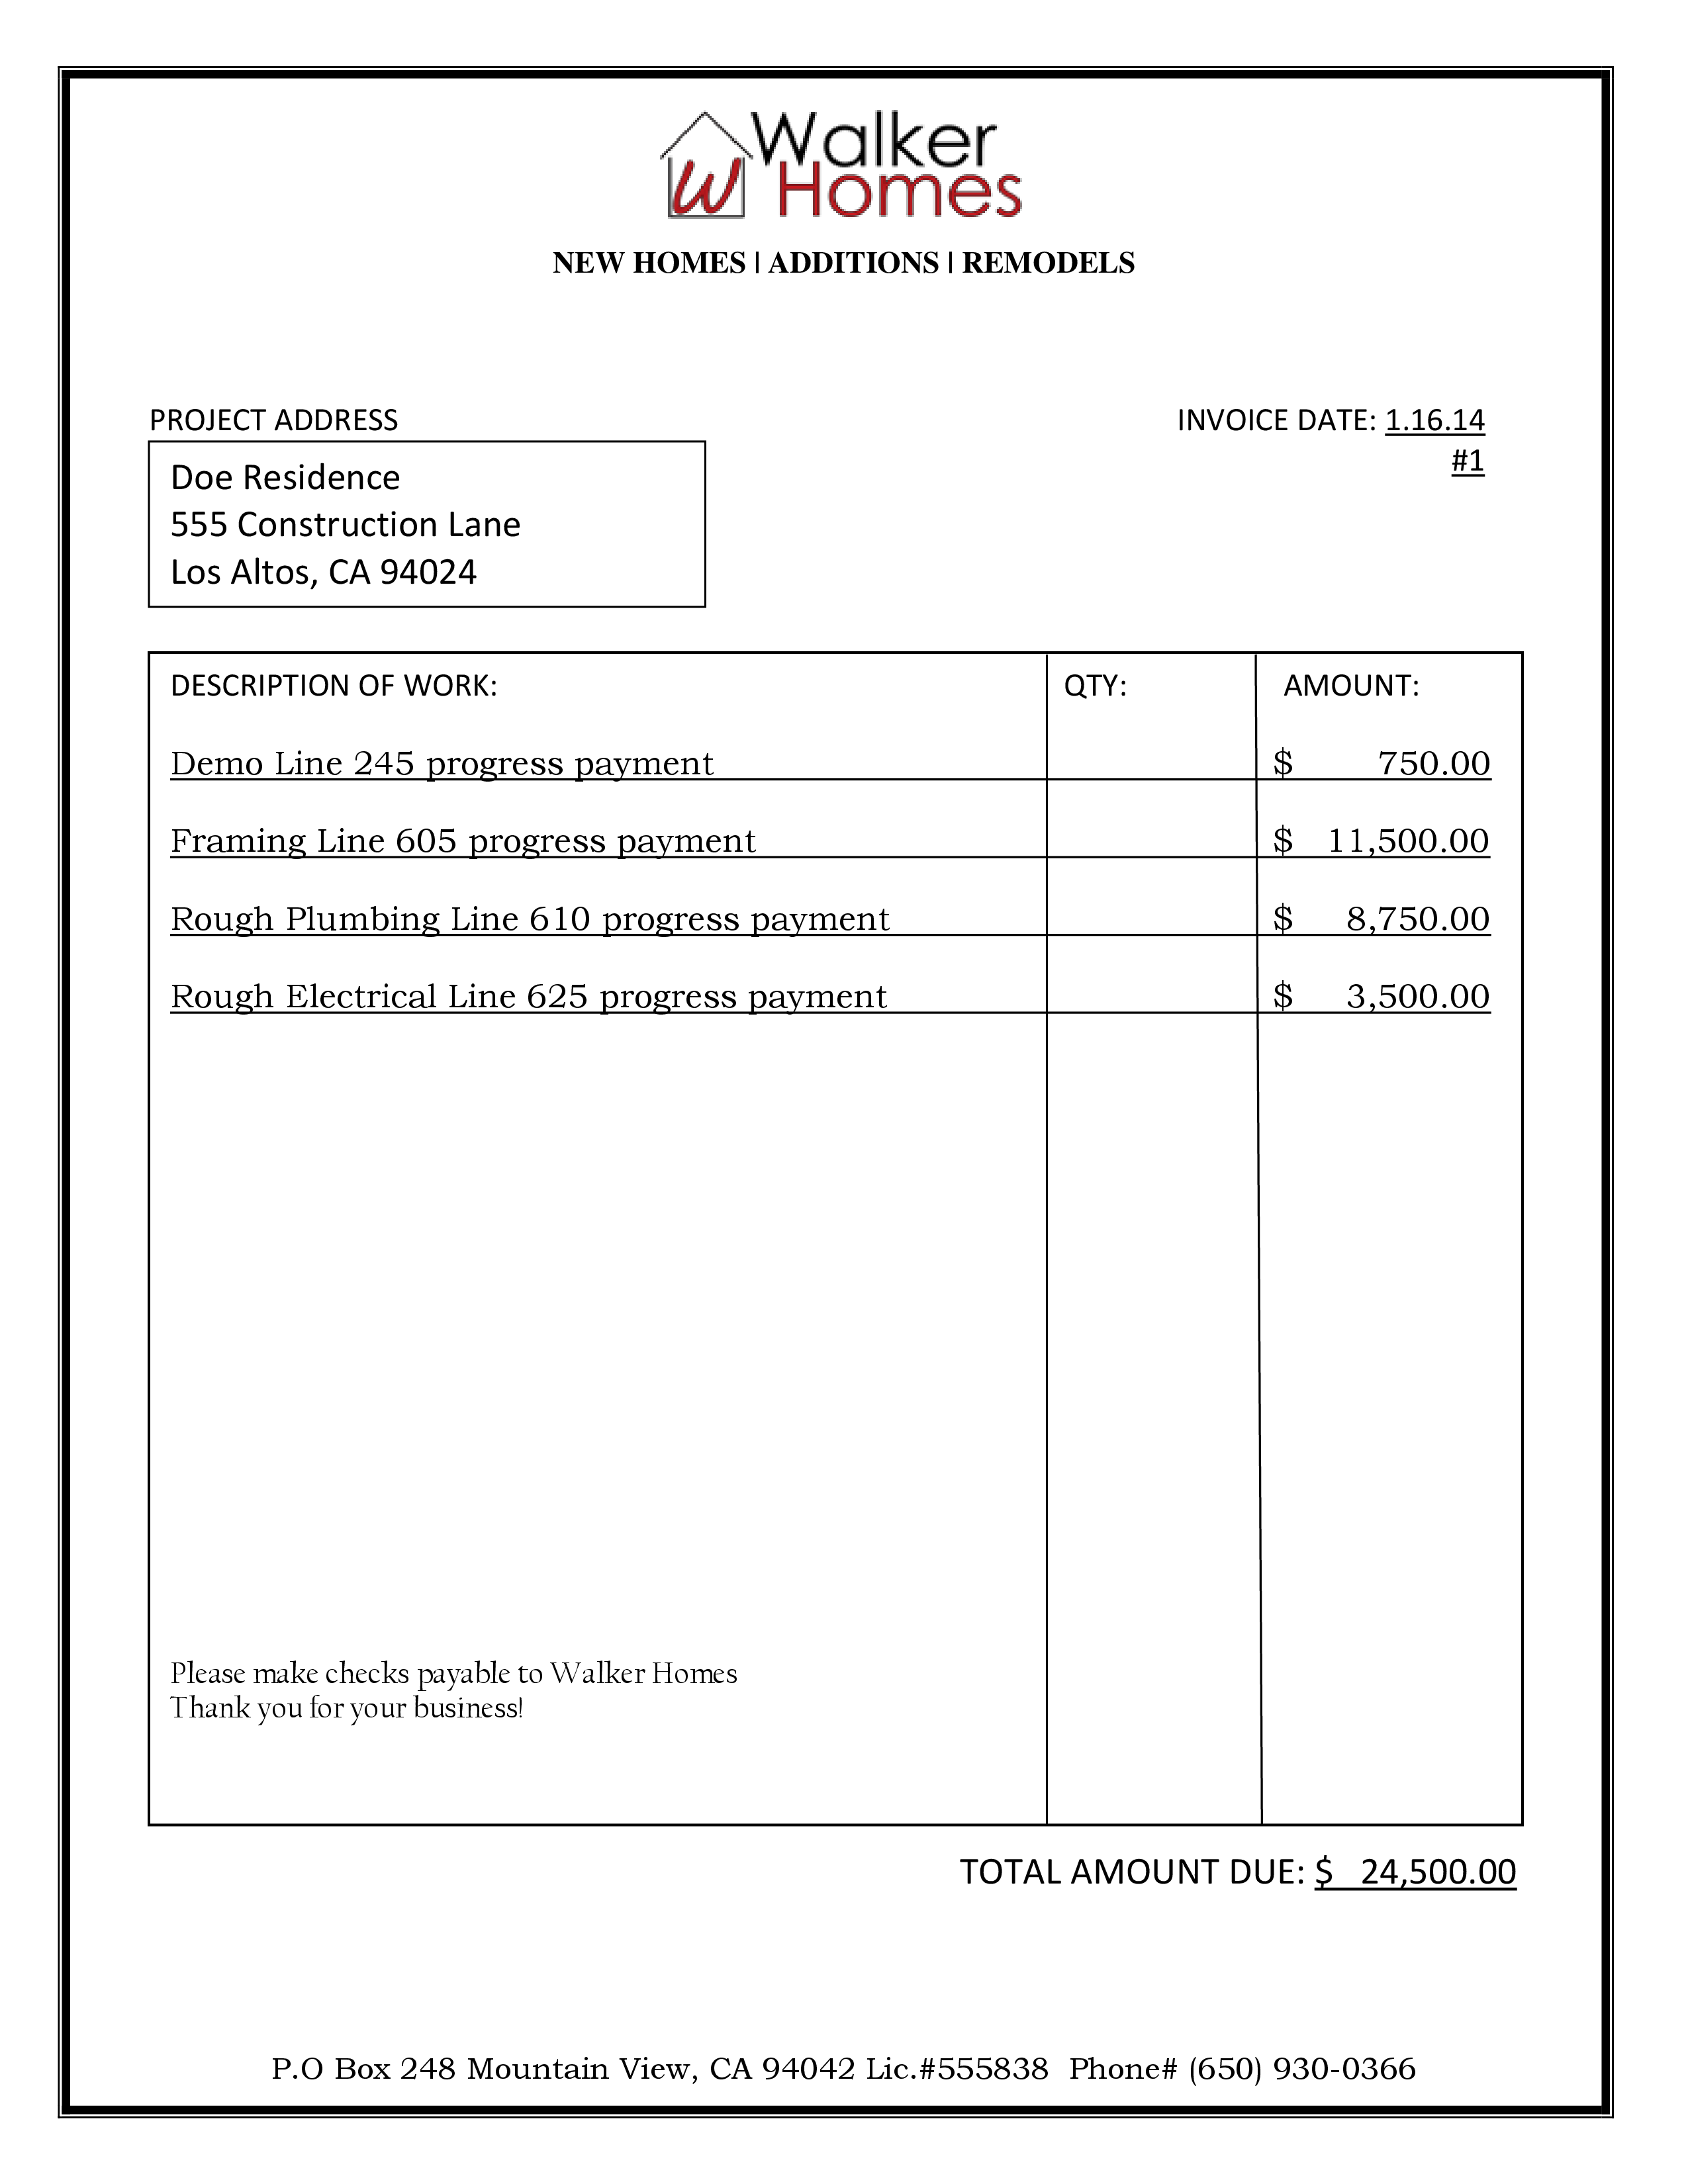 Angkajituus  Winsome How To Write A Simple Invoice Sample Survey Questionnaire  With Heavenly Example Of A Invoice Packing Slip Template Graduate Student Cv   With Comely Dealer Invoice Price Canada Free Also Igf Invoice Finance Ltd In Addition Free Printable Invoice Online And What Is A Invoice Used For As Well As Non Payment Of Invoice Additionally Sales Invoice Sample From Sklepco With Angkajituus  Heavenly How To Write A Simple Invoice Sample Survey Questionnaire  With Comely Example Of A Invoice Packing Slip Template Graduate Student Cv   And Winsome Dealer Invoice Price Canada Free Also Igf Invoice Finance Ltd In Addition Free Printable Invoice Online From Sklepco